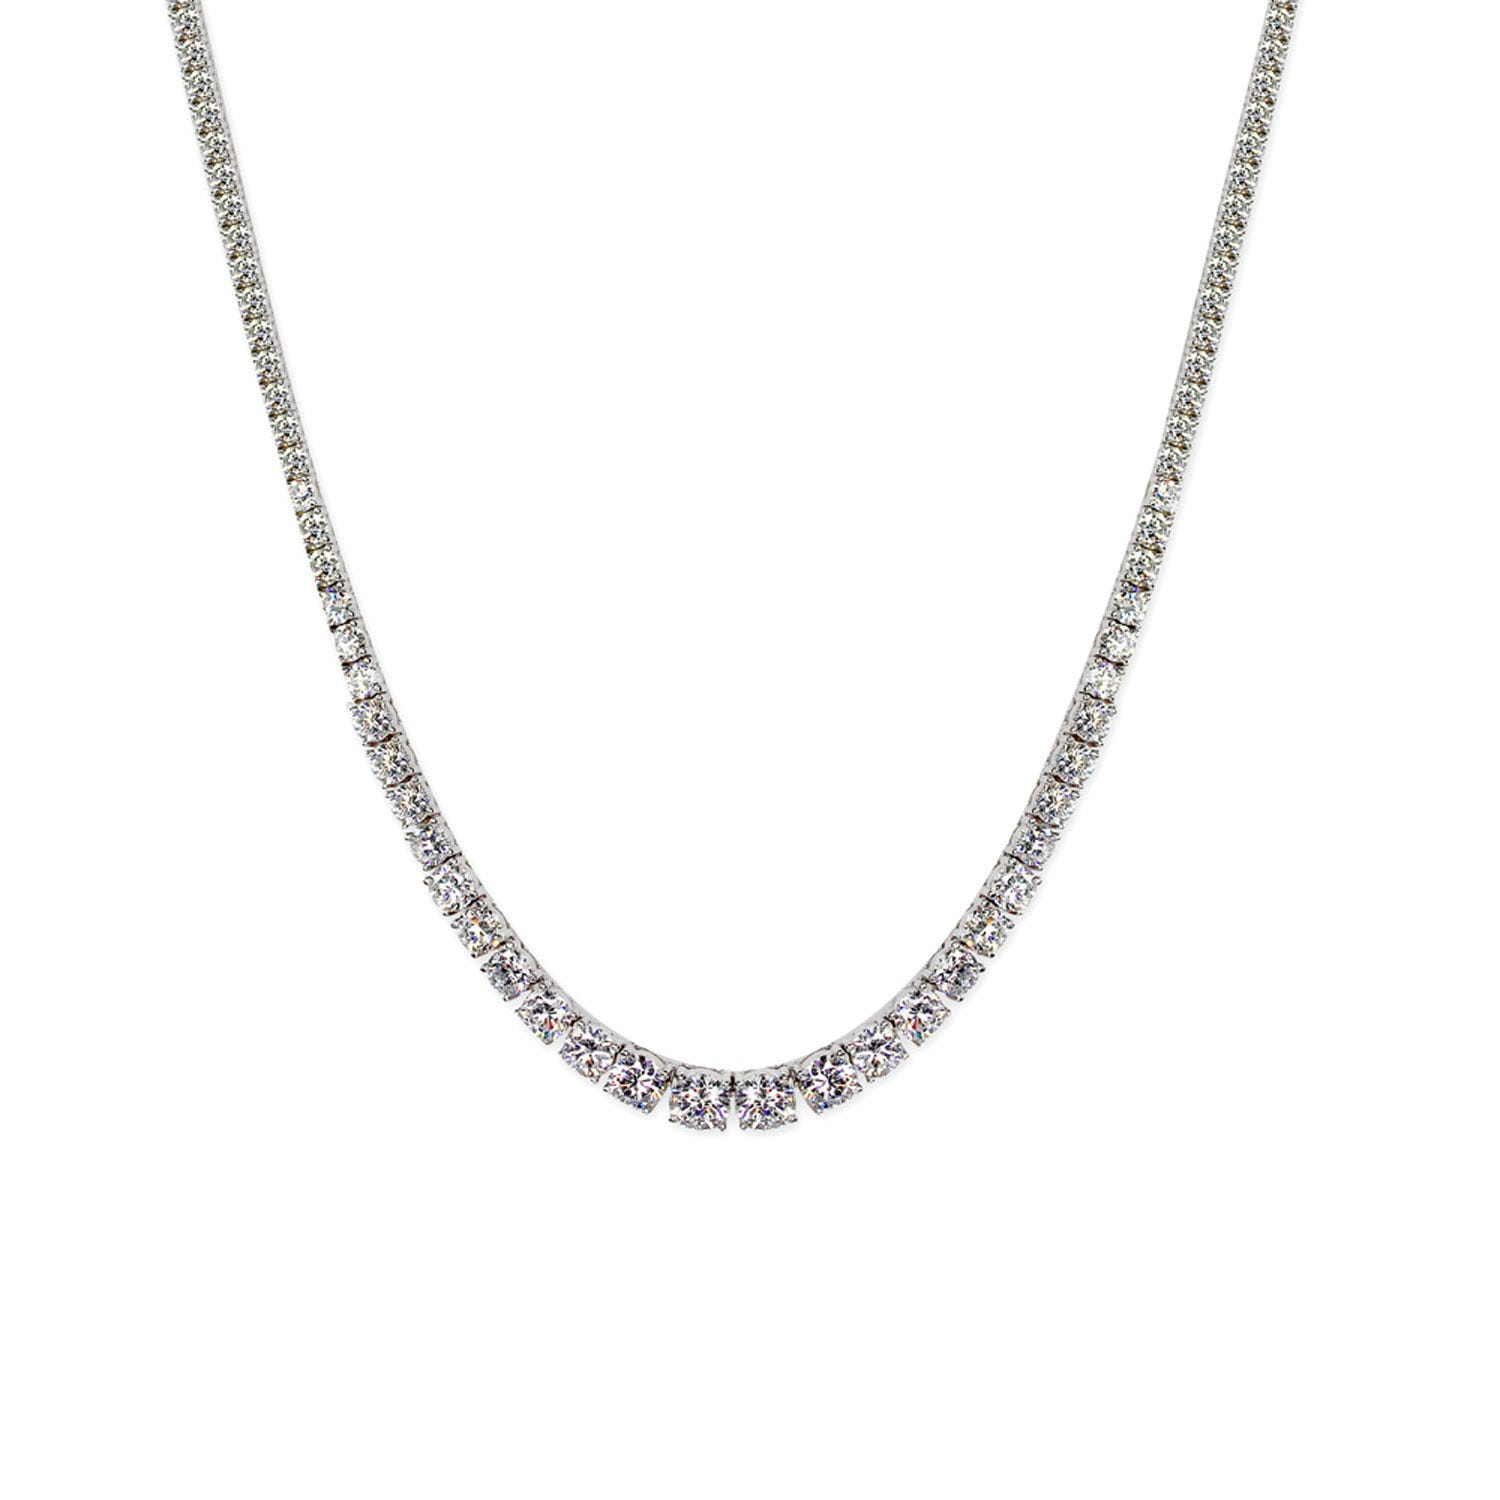 CARAT* London Sterling Silver Graduated Tennis Necklace Featuring Small Round Brilliant Cut CARAT* Stones